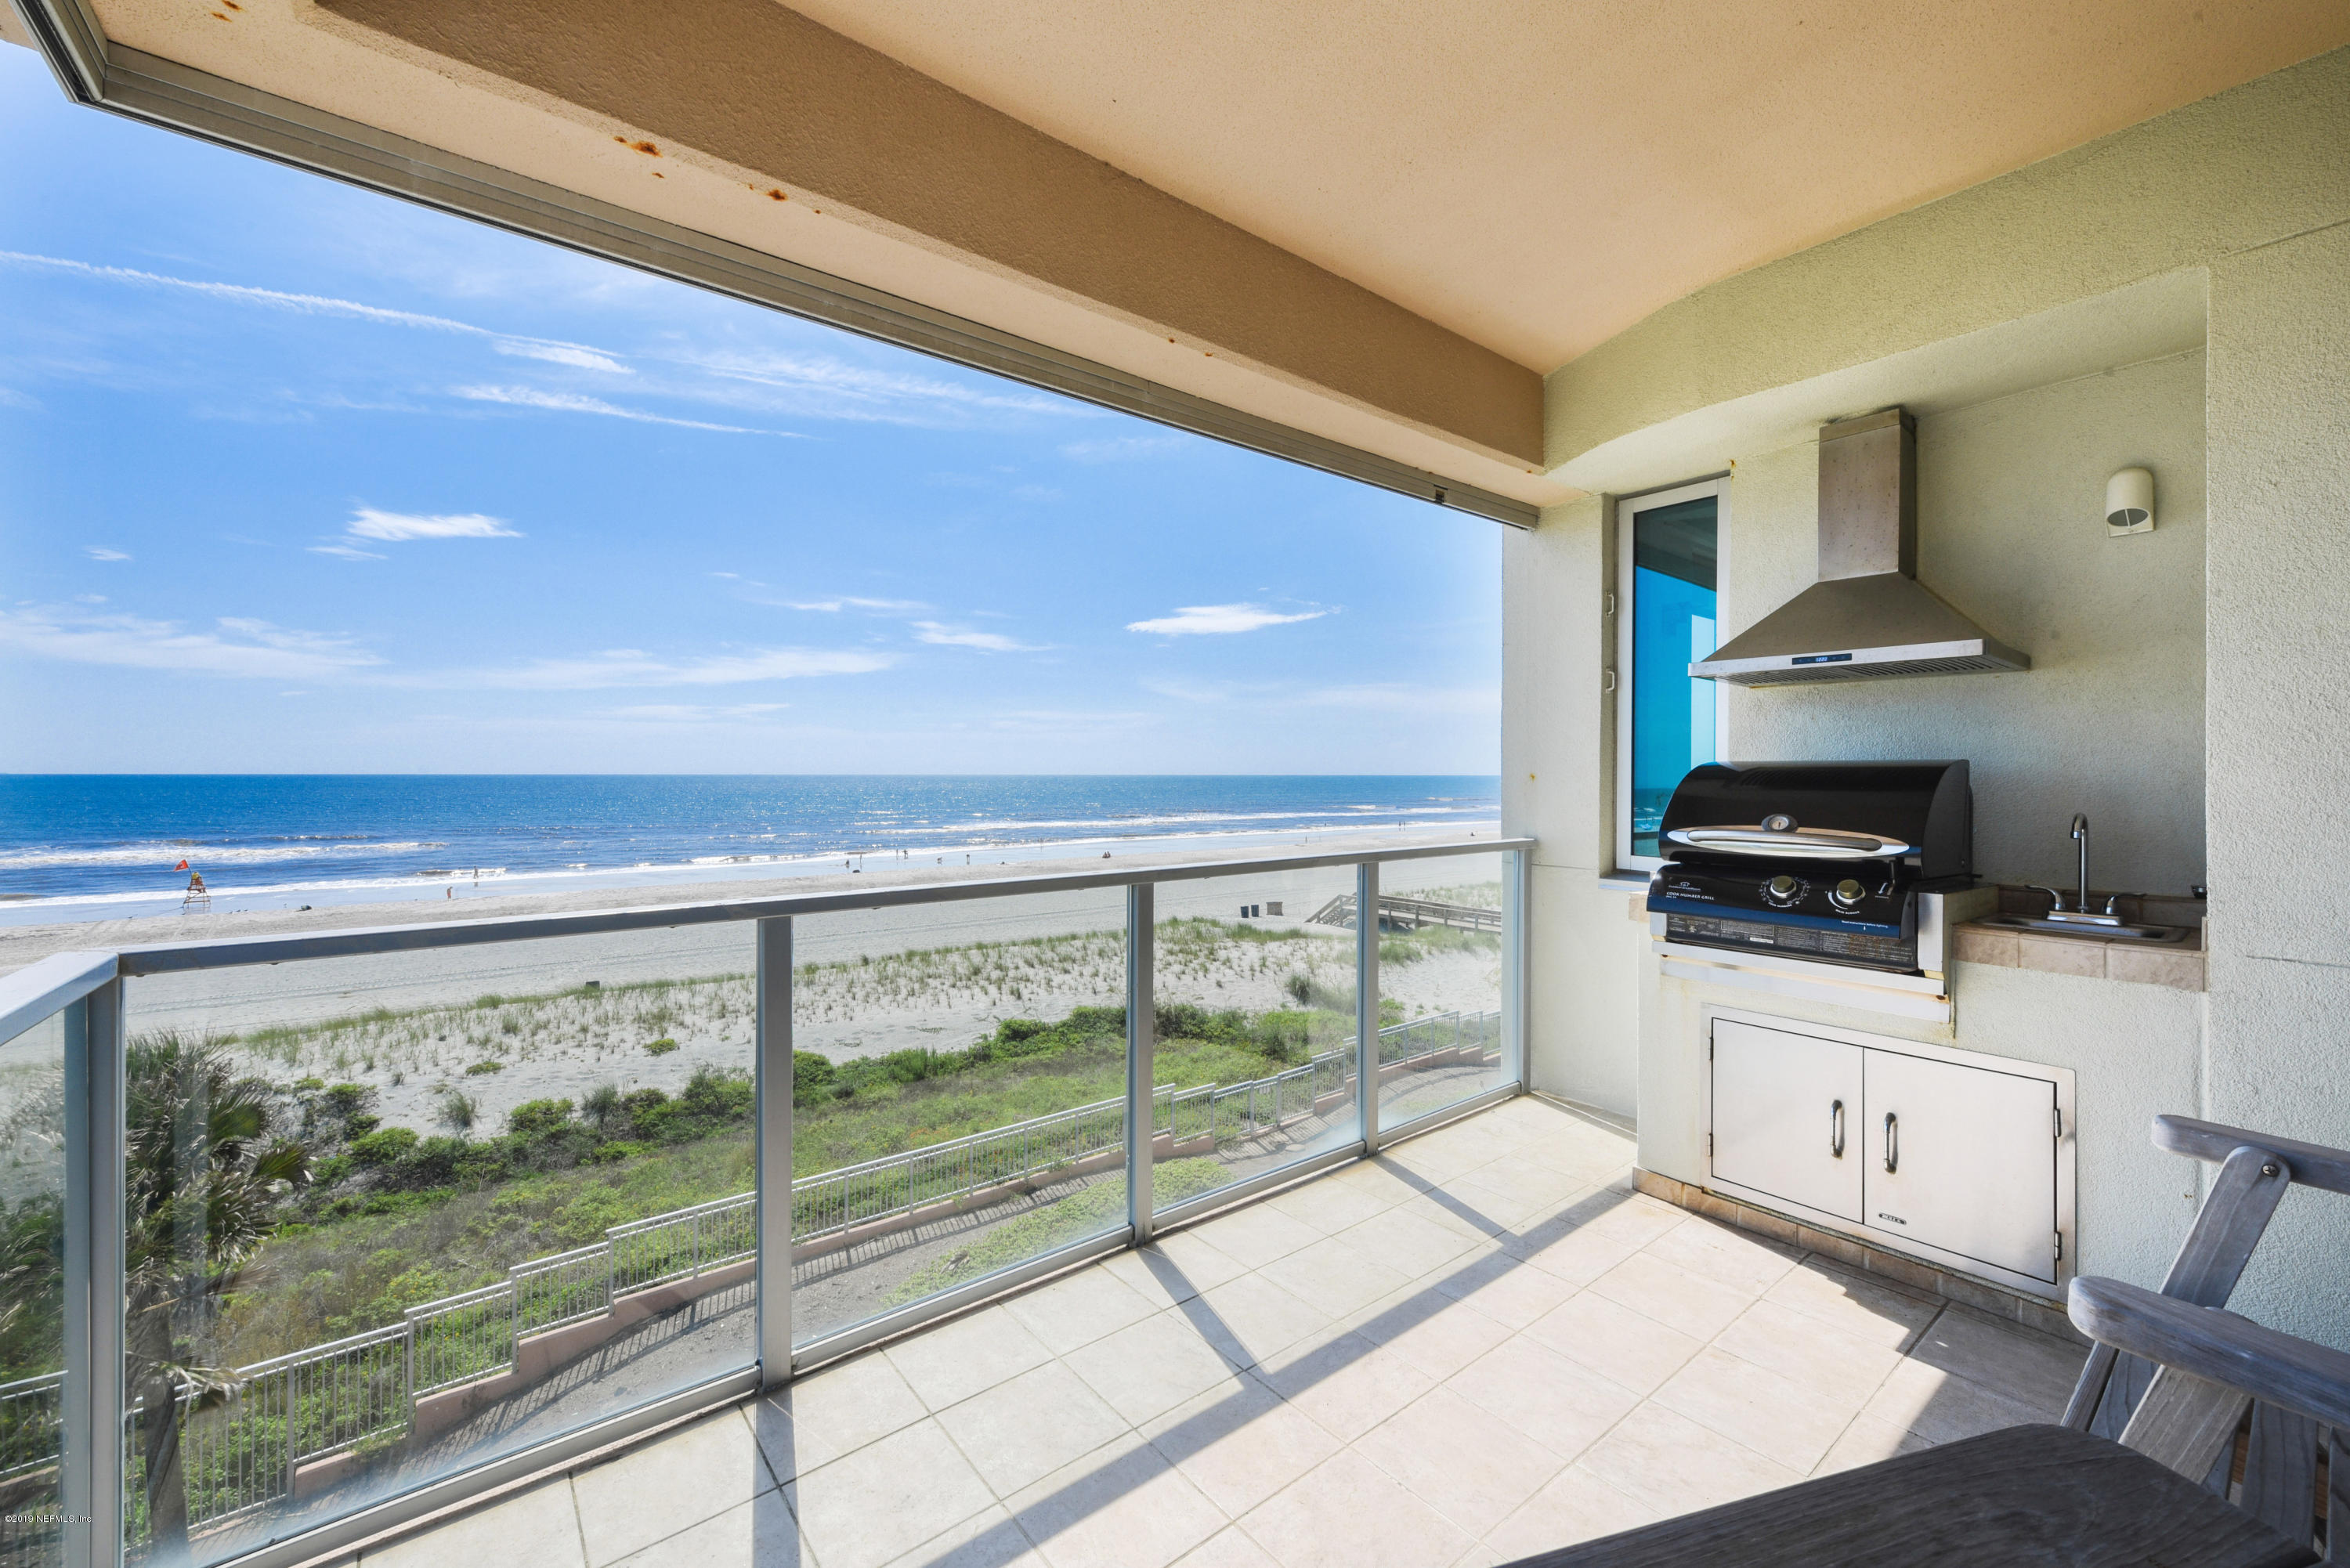 123 1ST- JACKSONVILLE BEACH- FLORIDA 32250, 4 Bedrooms Bedrooms, ,4 BathroomsBathrooms,Condo,For sale,1ST,959713